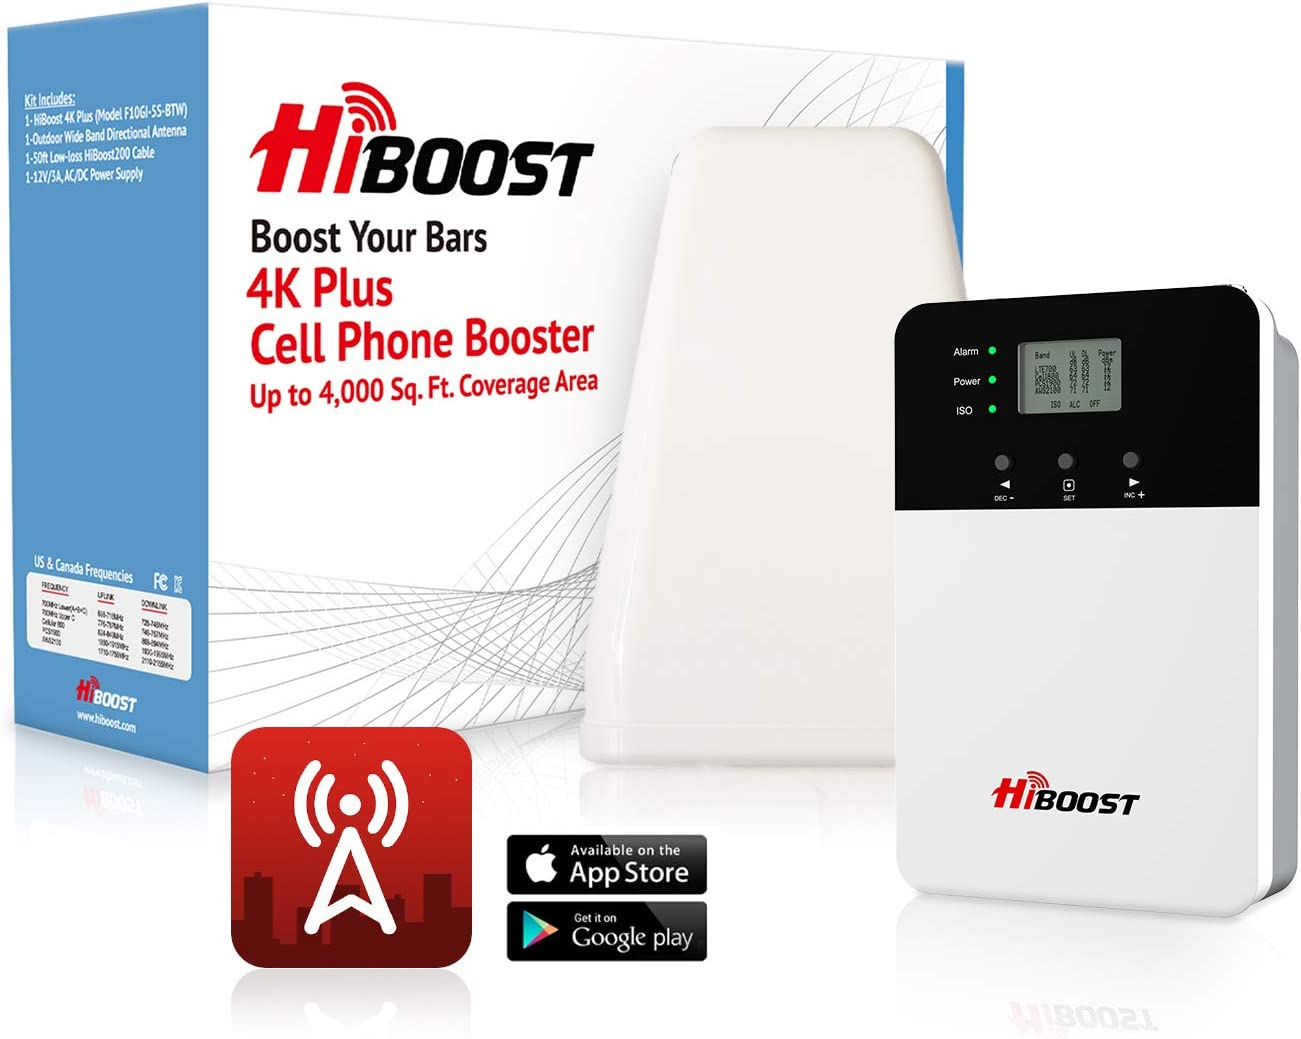 HiBoost 4K Plus Cell Phone Signal Booster Kit for Home or Office | Up to 4,000 sq ft of Coverage | for All U.S. Carriers Verizon, AT&T, T-Mobile, Sprint